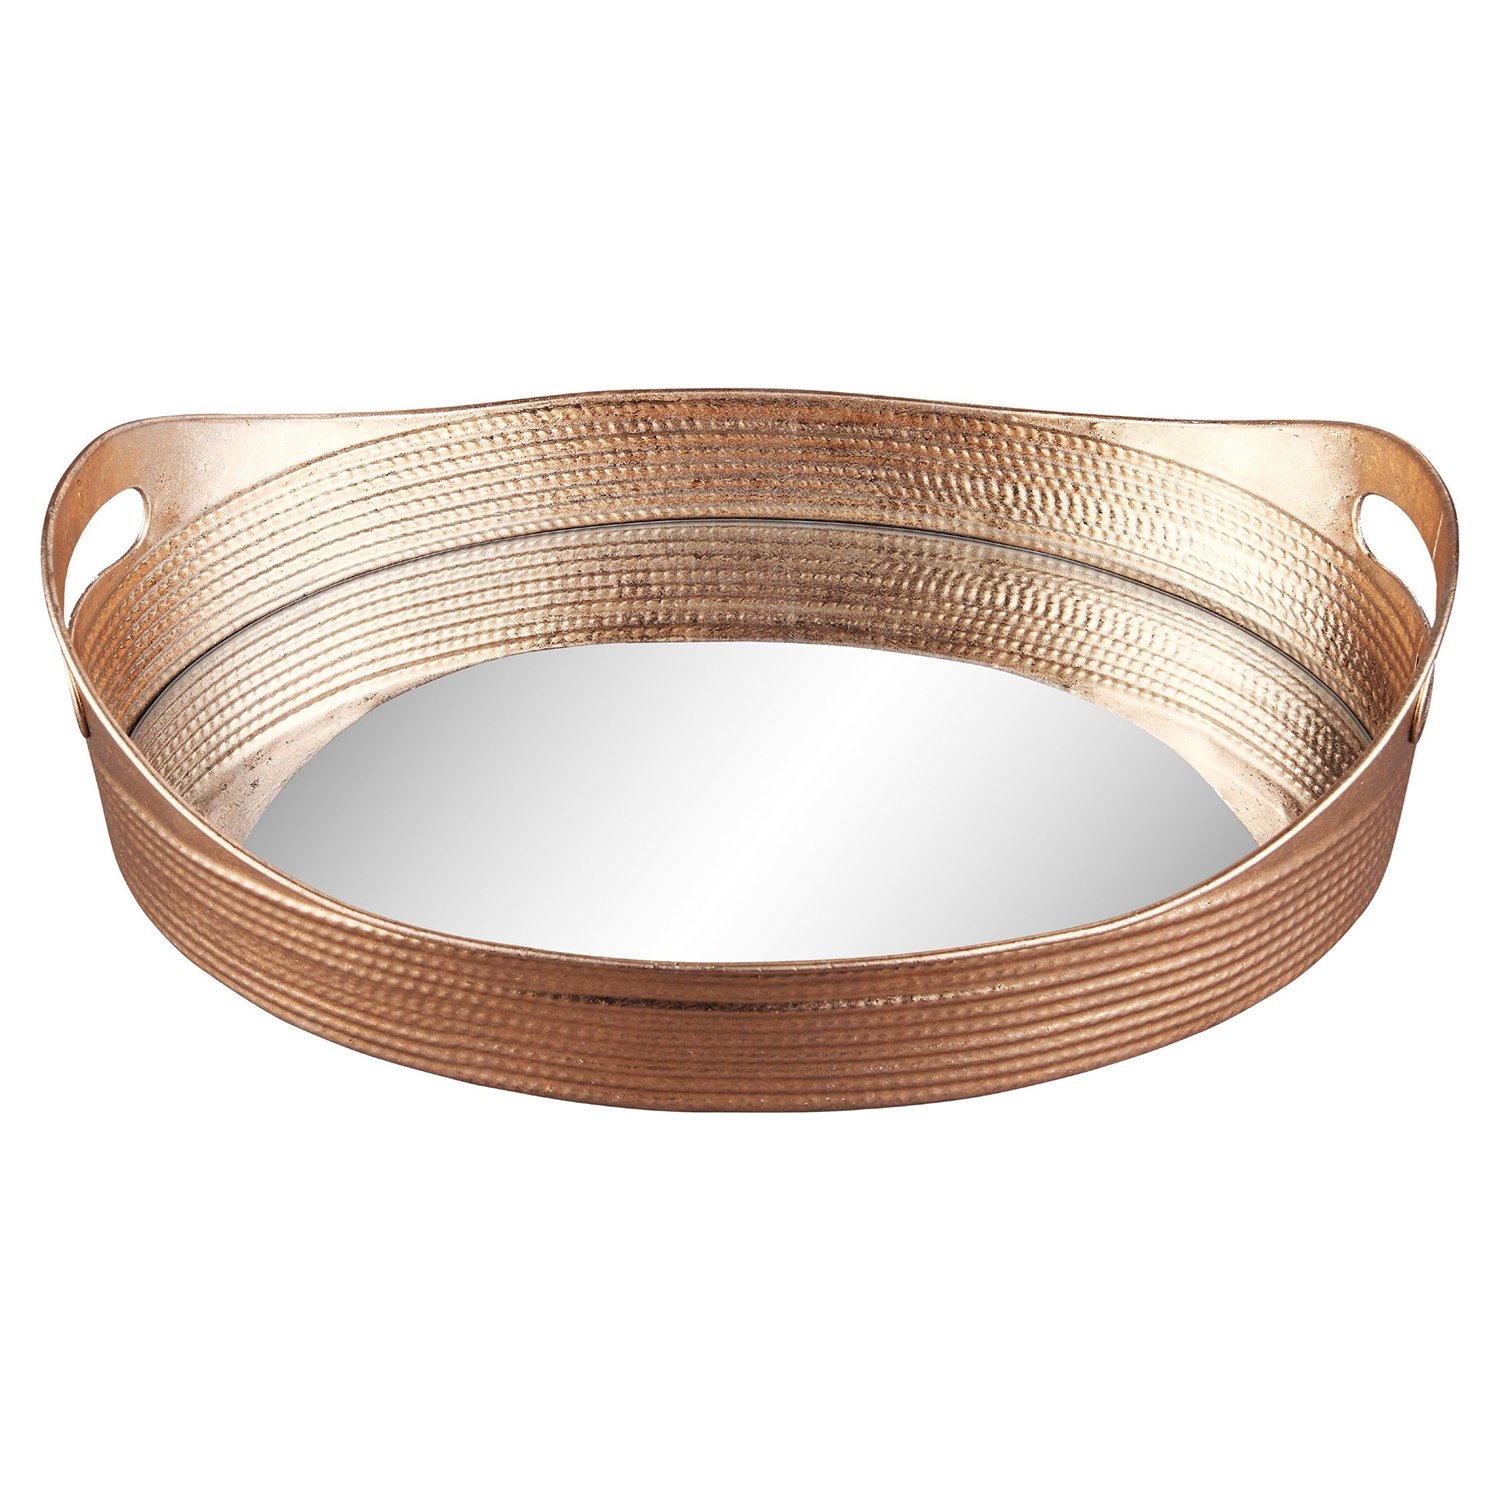 Basket 2 Pieces Tray - Gold - MOES-HW-1052-32